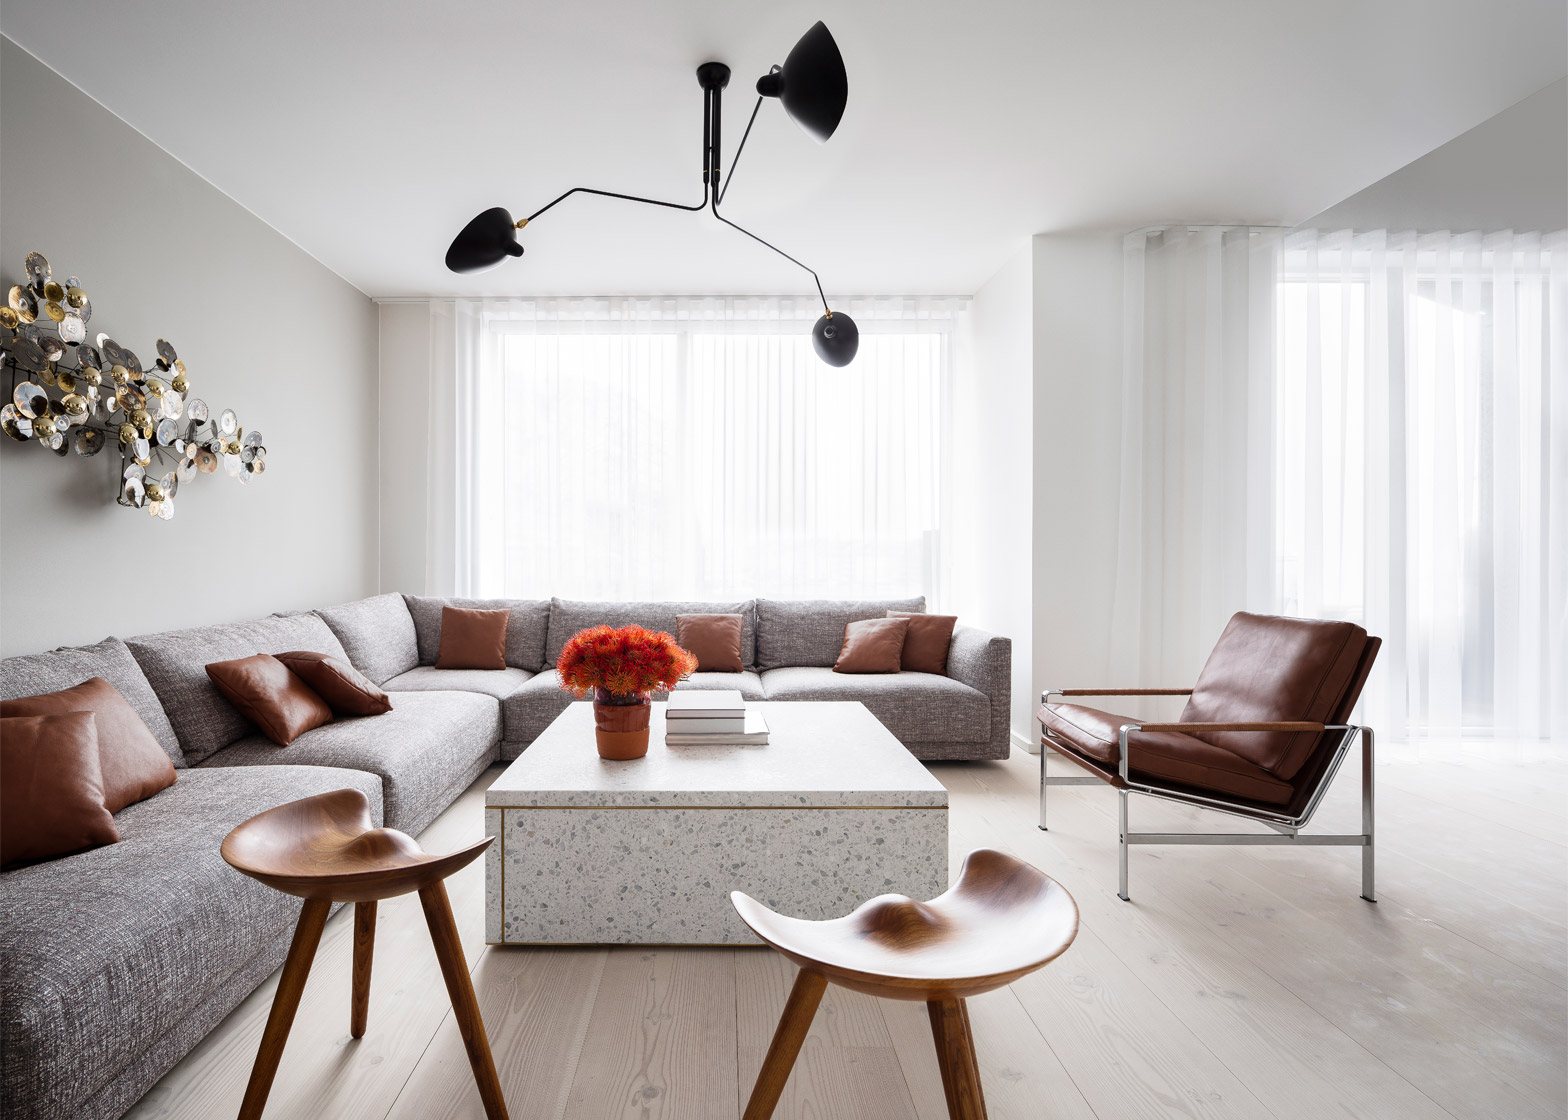 Studio David Thulstrup avoids Scandinavian furniture in Copenhagen apartment design